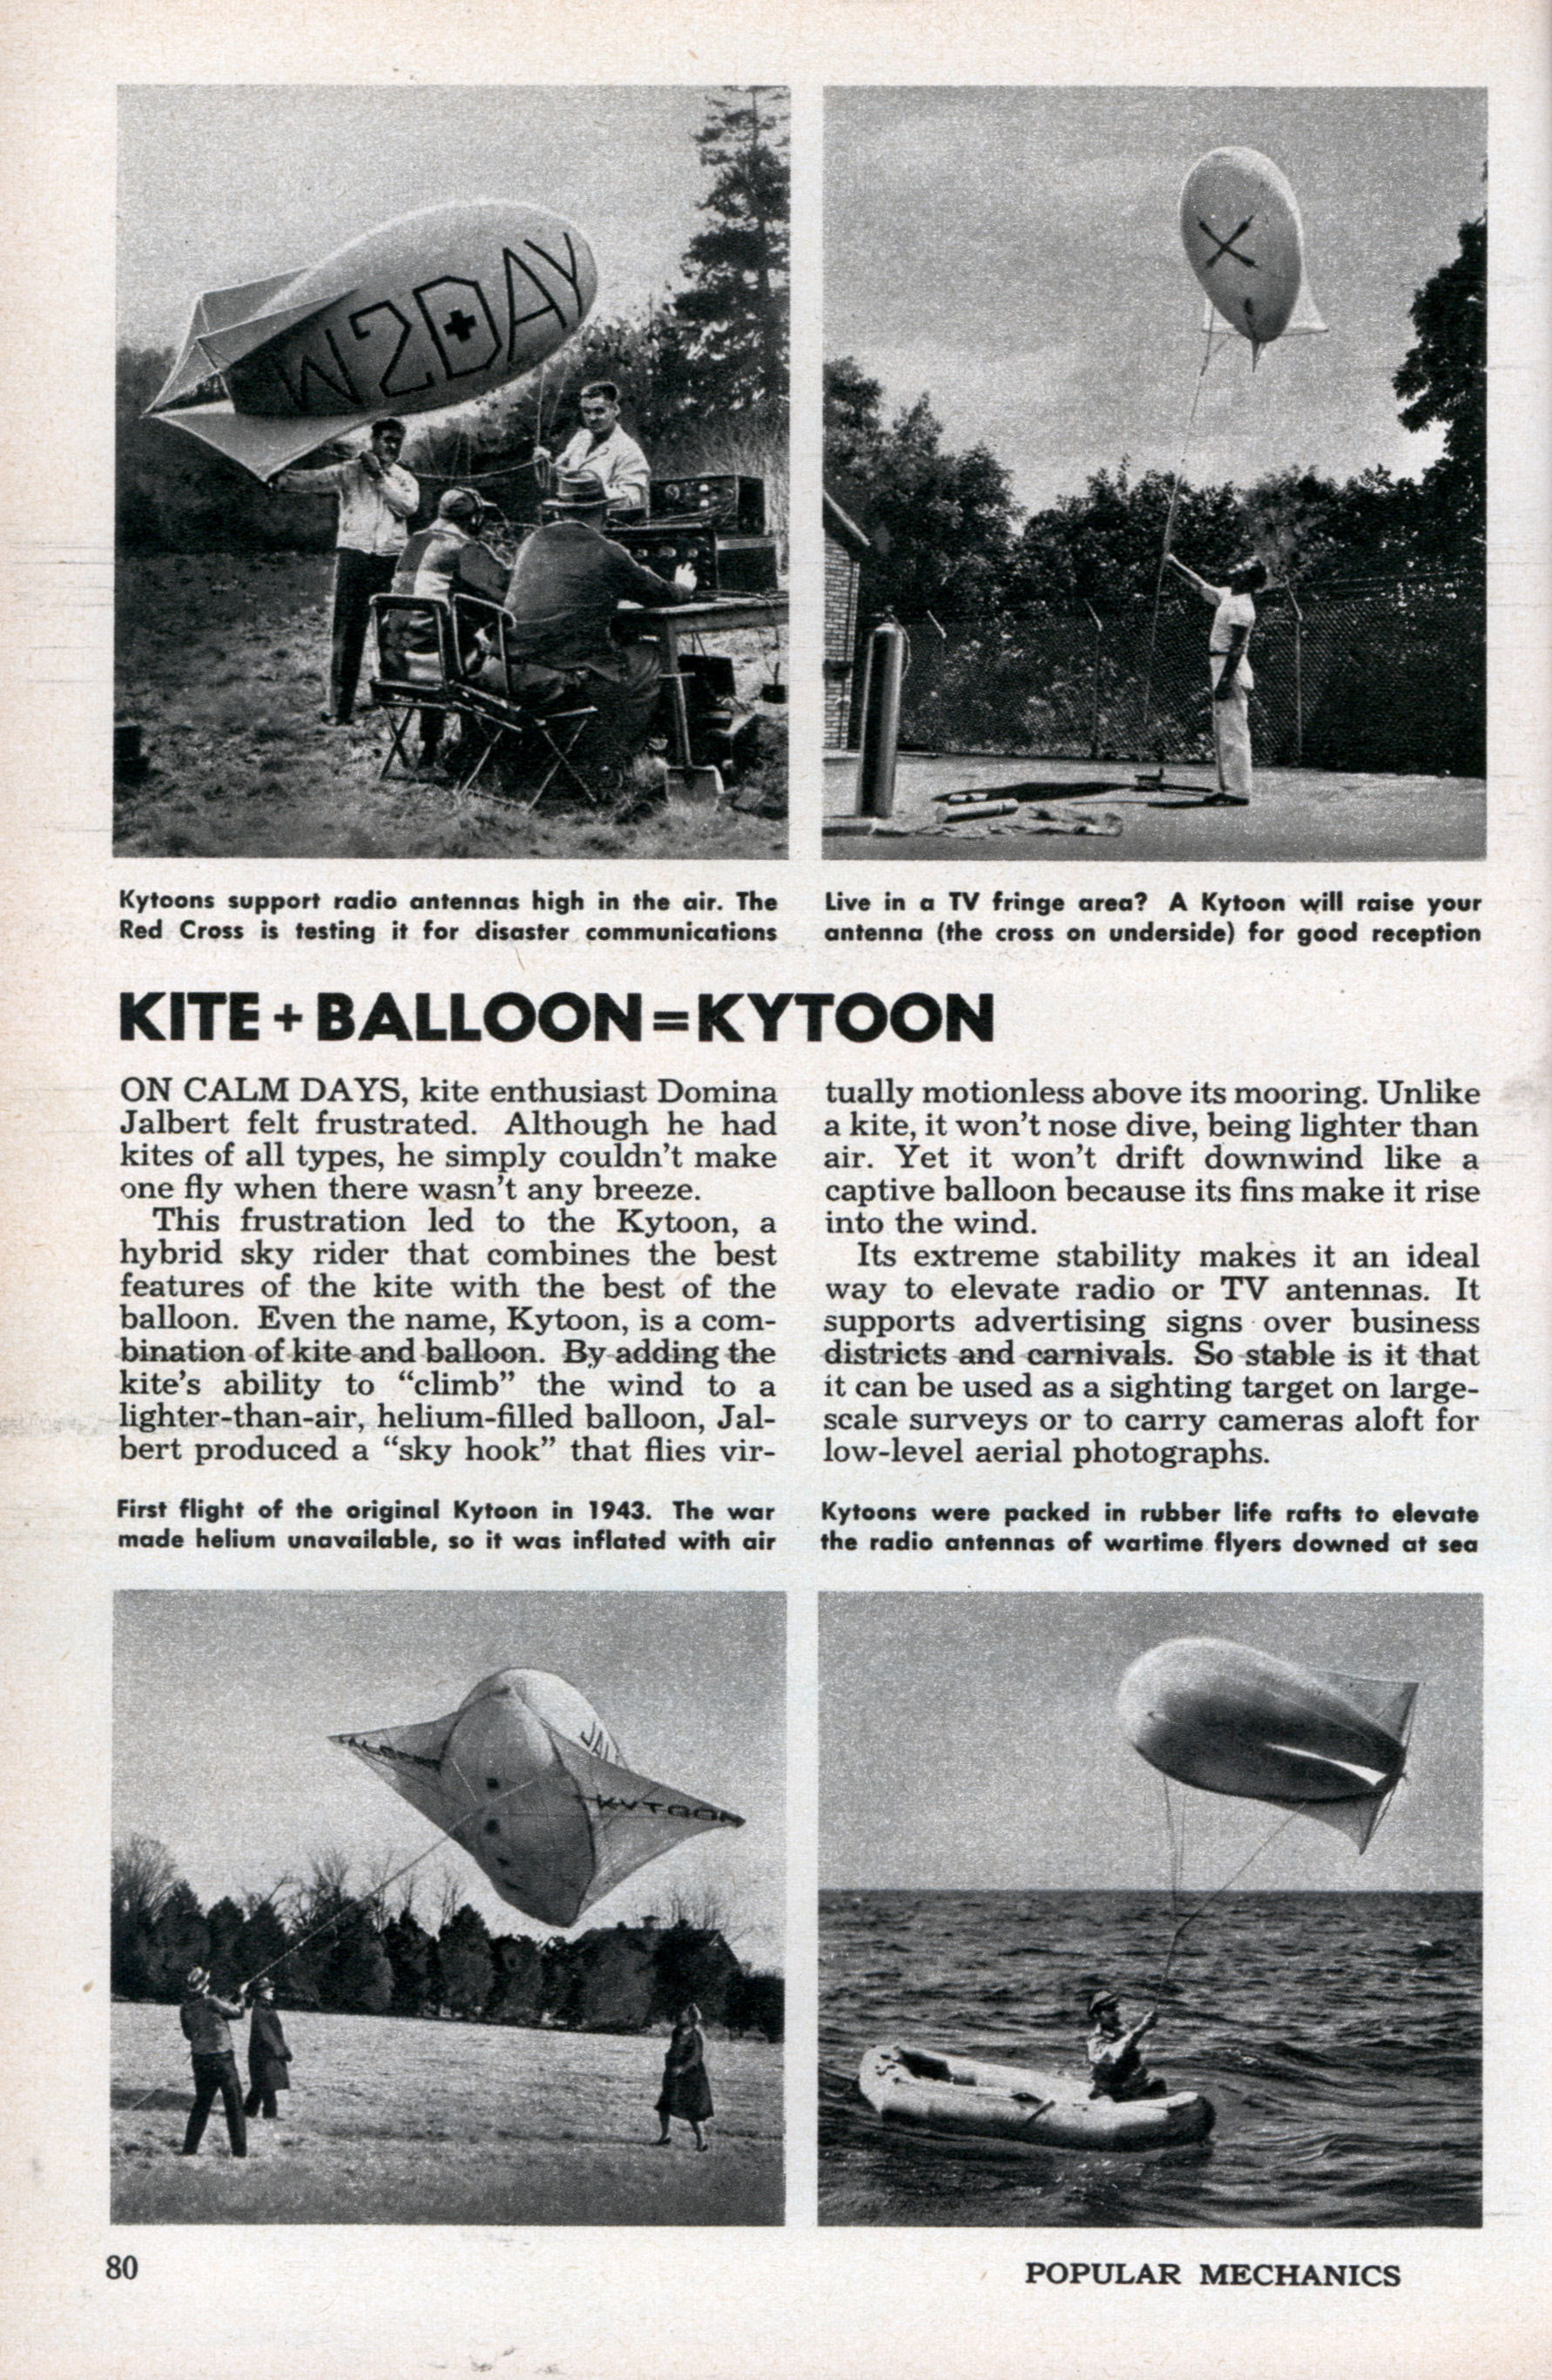 Domina Jalbert's Kite balloon for radio antennas